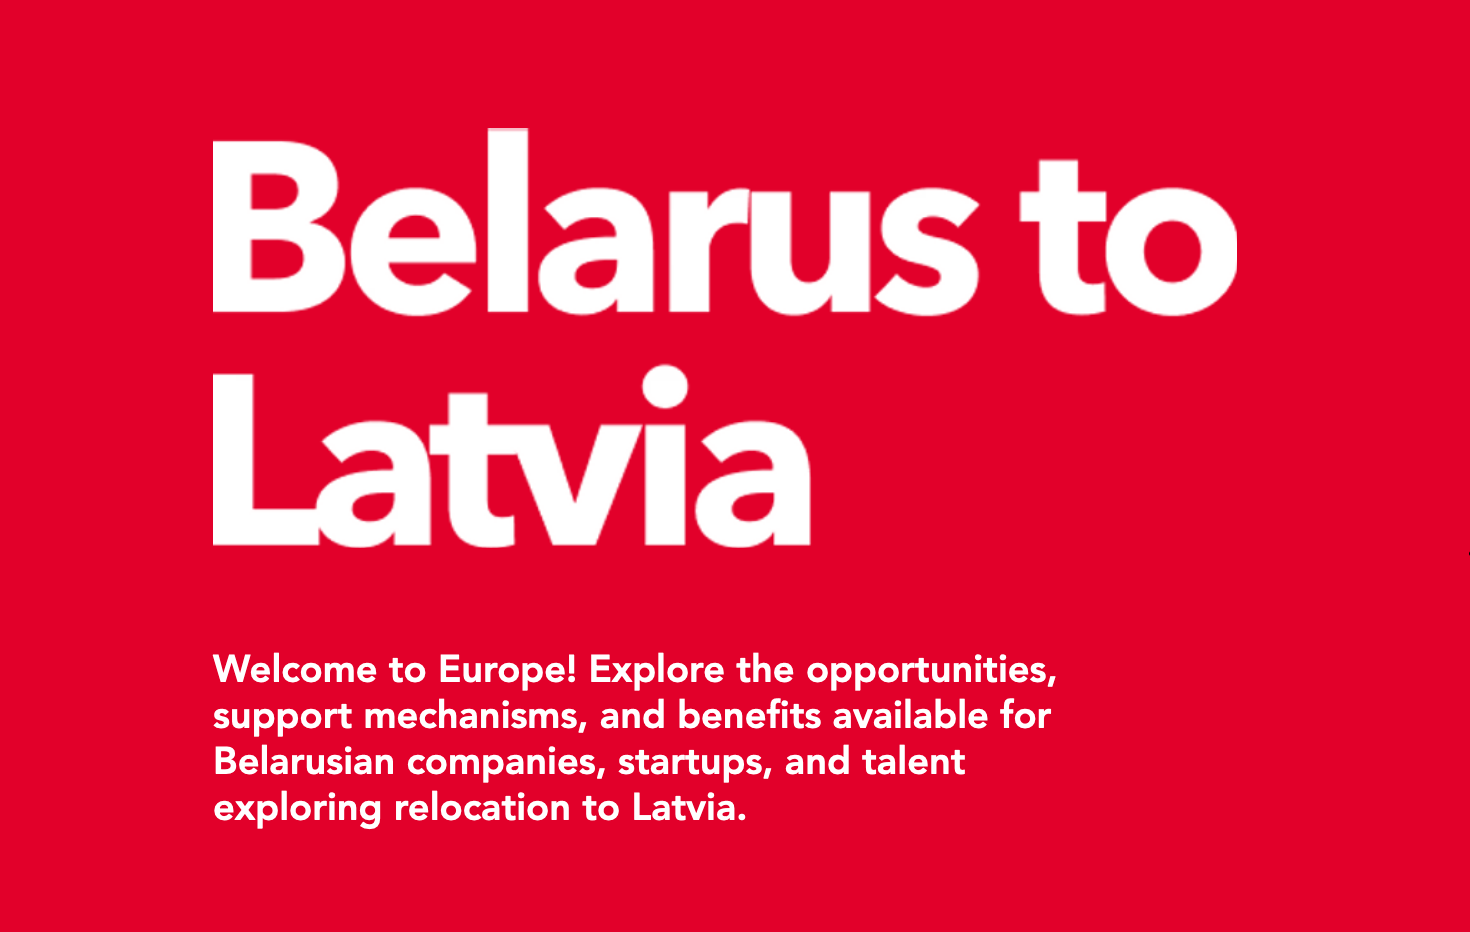 Belarus to Latvia